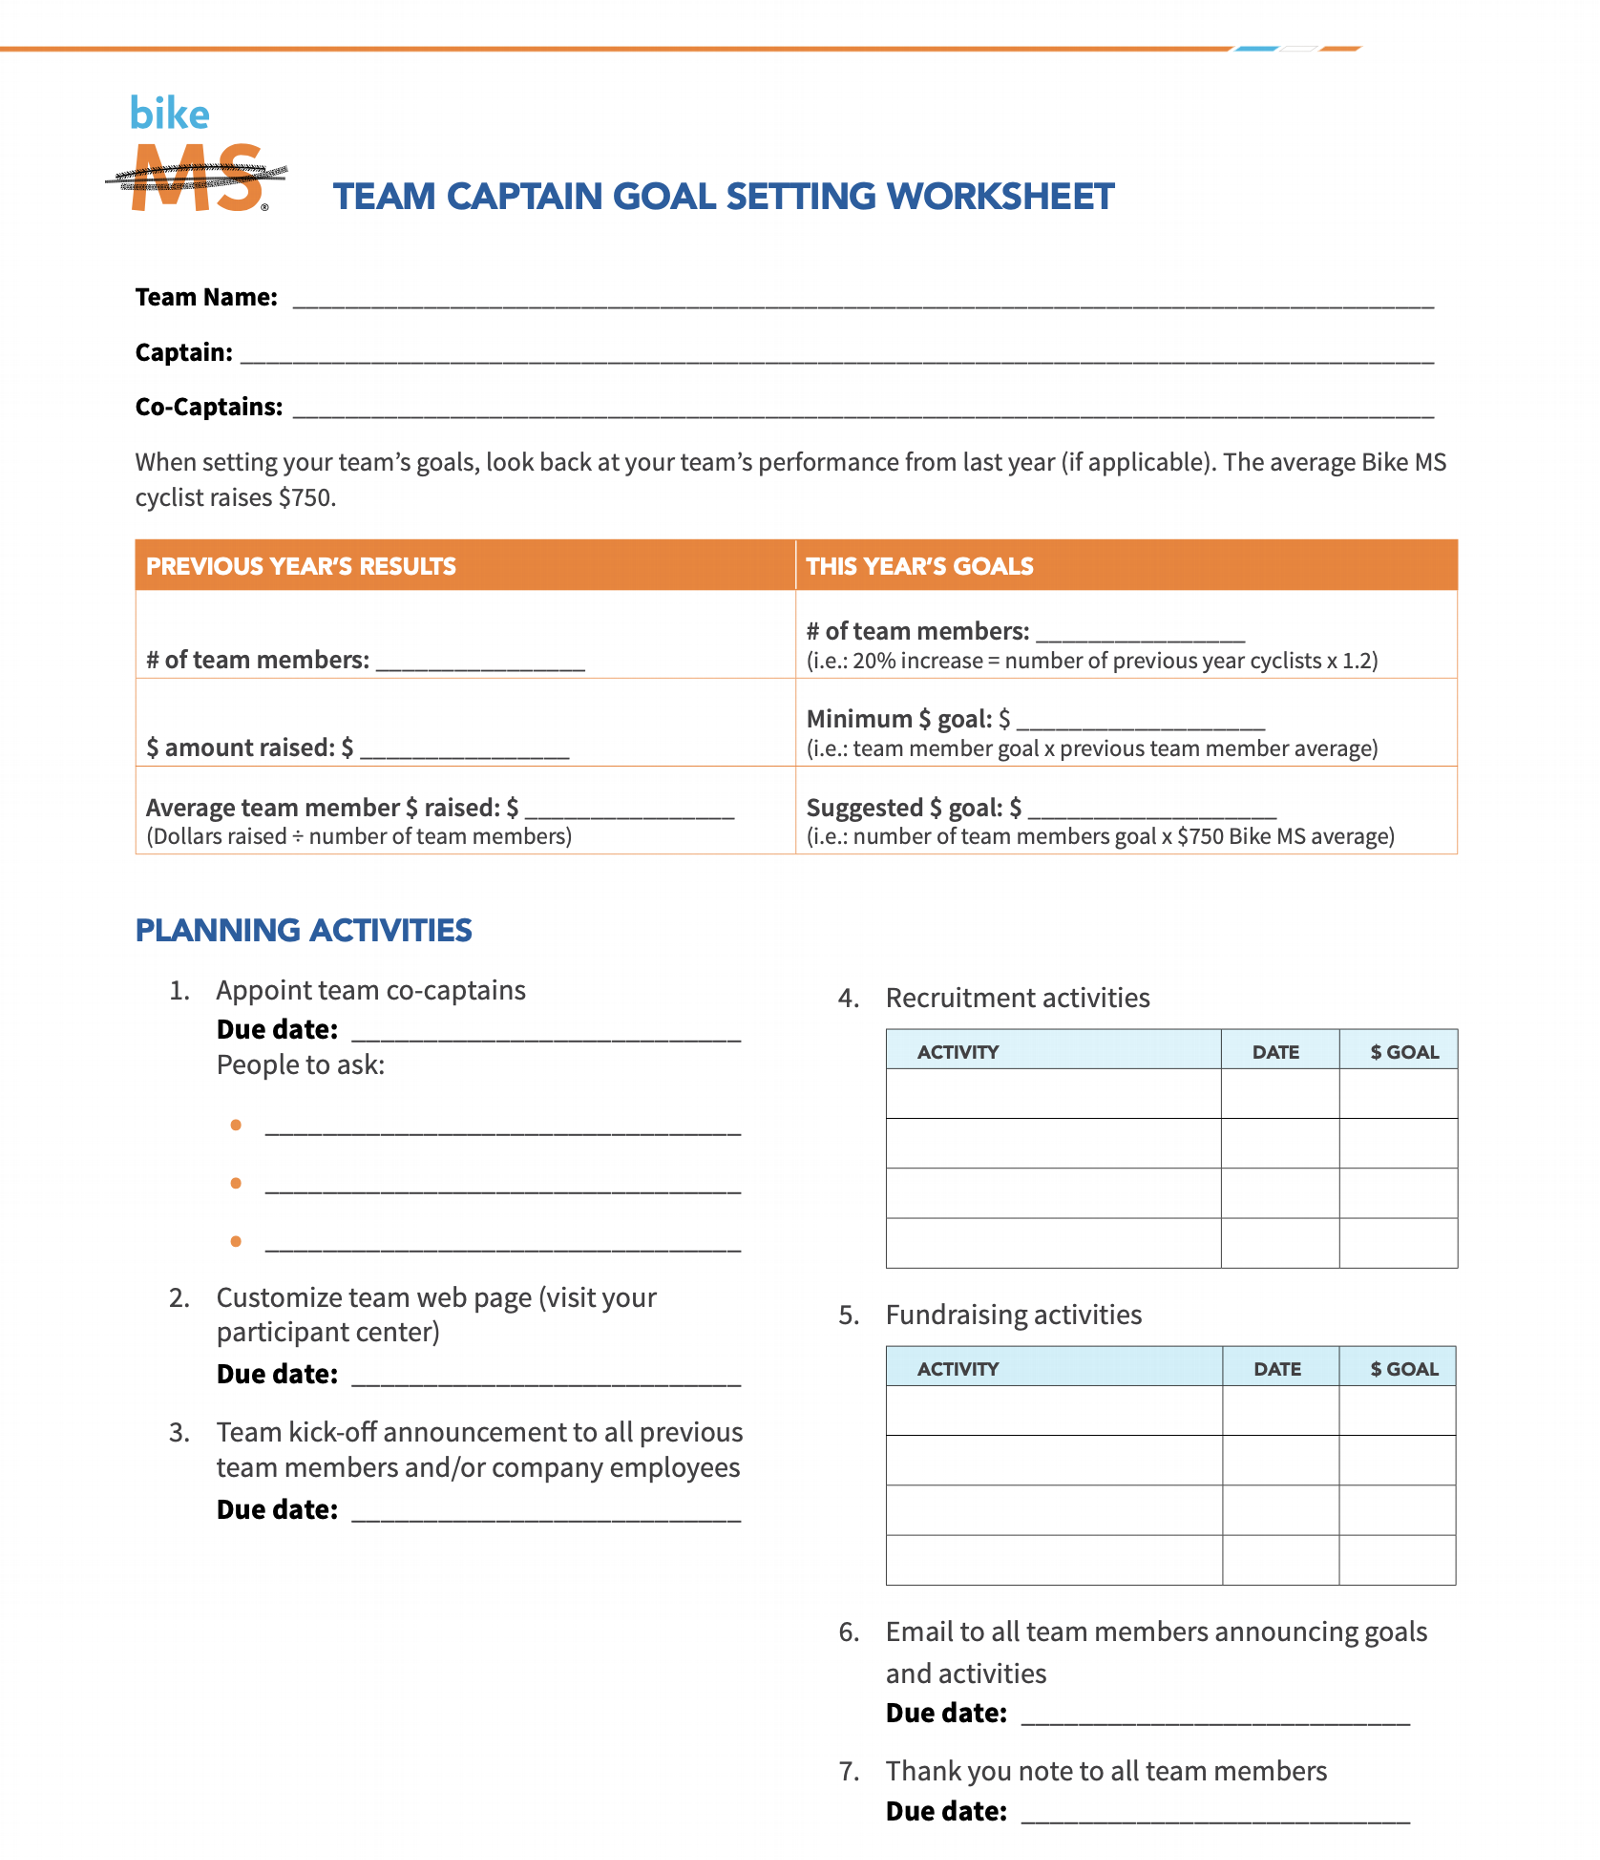 Team captain goal setting worksheet